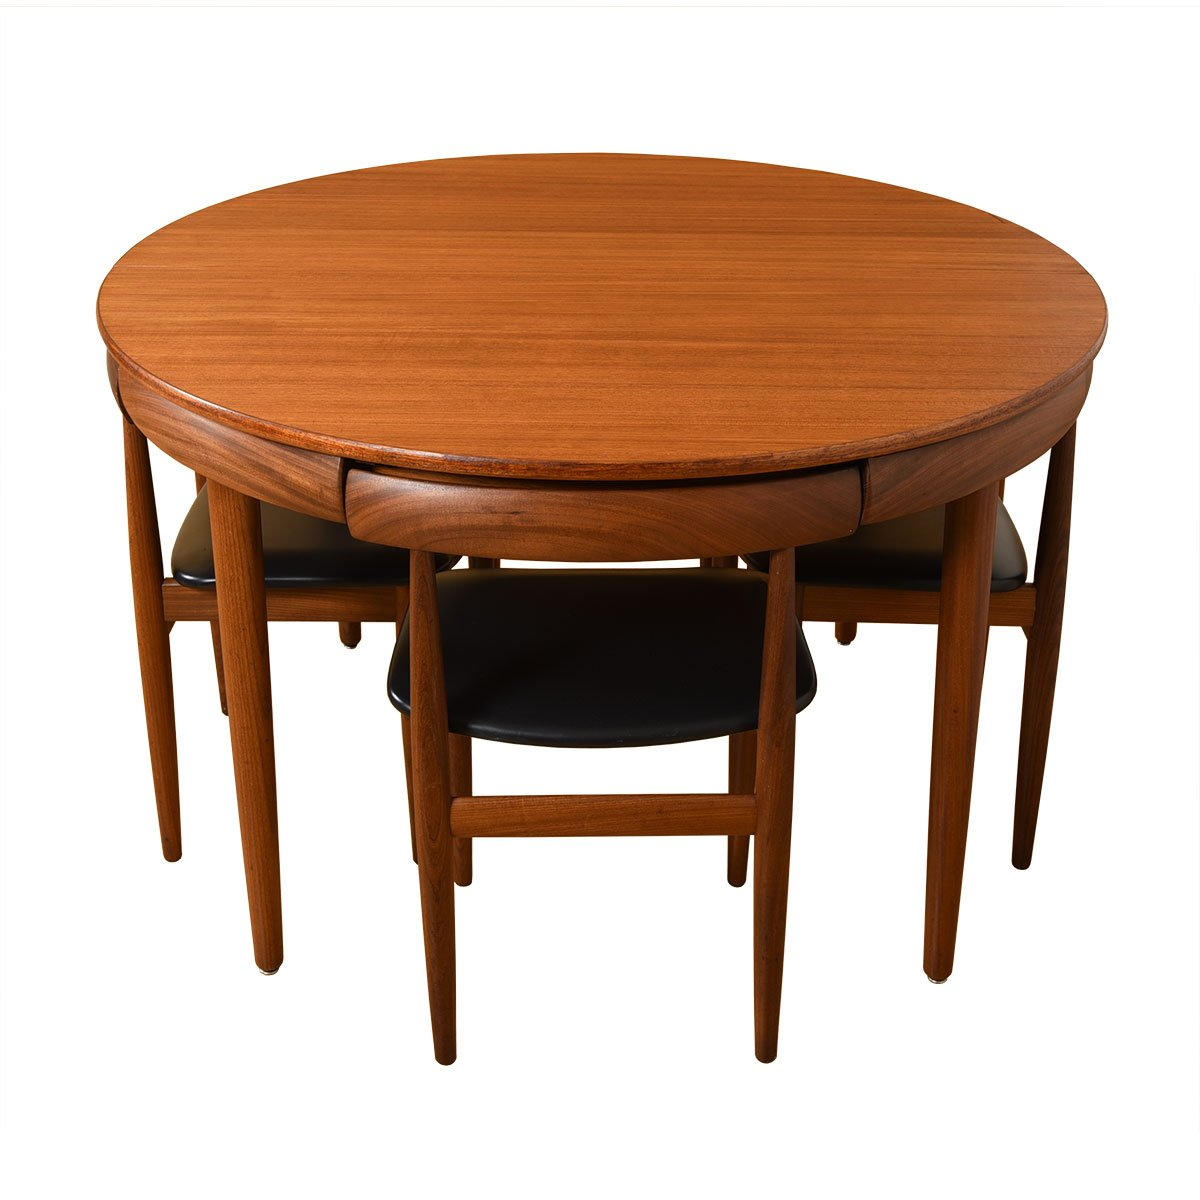 Mid Century Walnut Butterfly Leaf Expanding Round Dining Table + Chair Set.